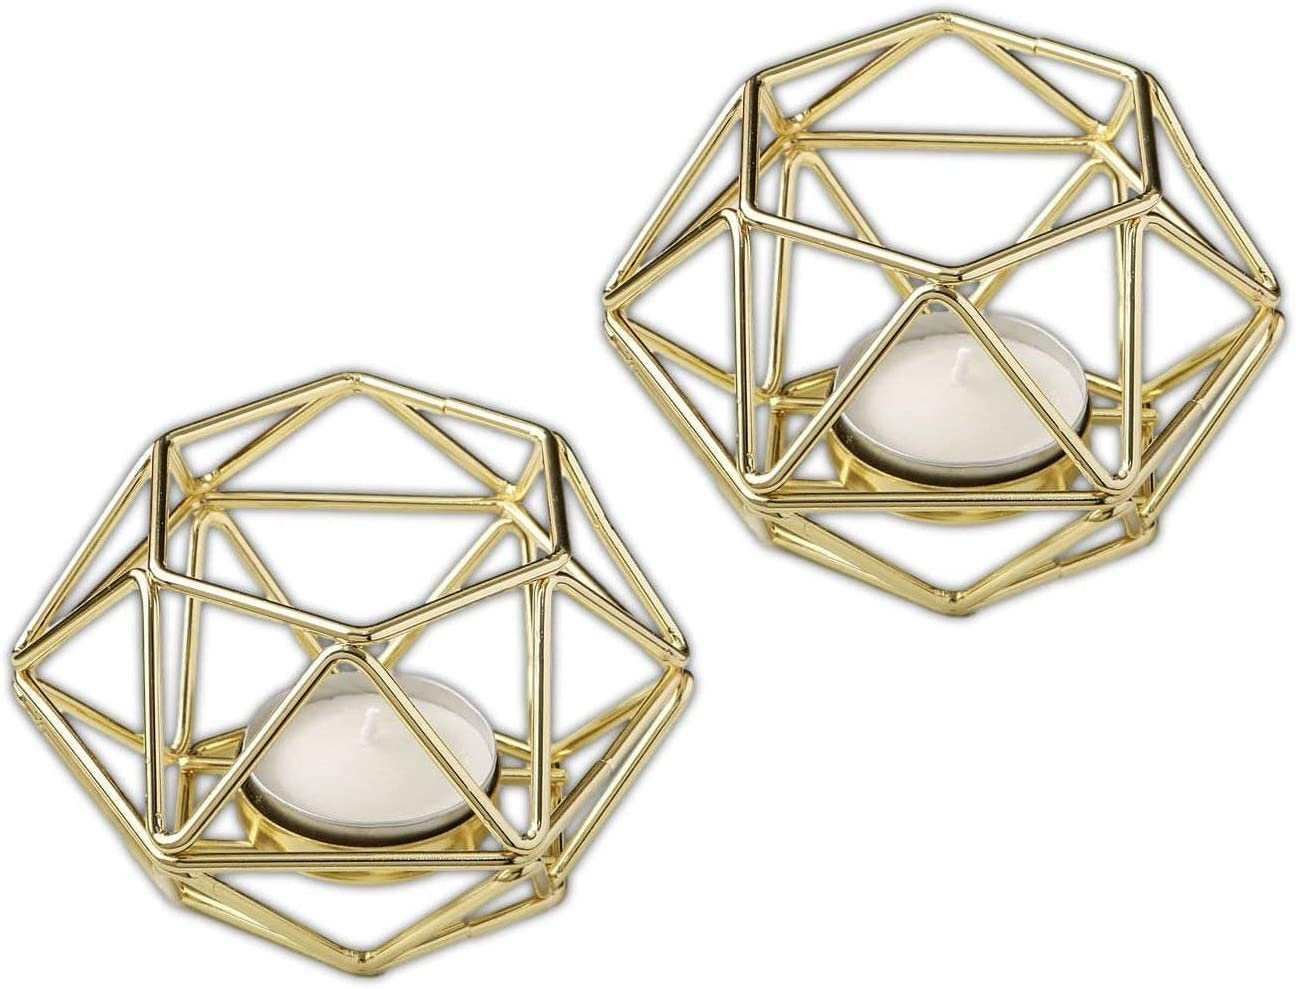 "FASHIONCRAFT Bundle of 2 4"" Gold-Tone Geometric Hexagon Tea Light Candle Holders"